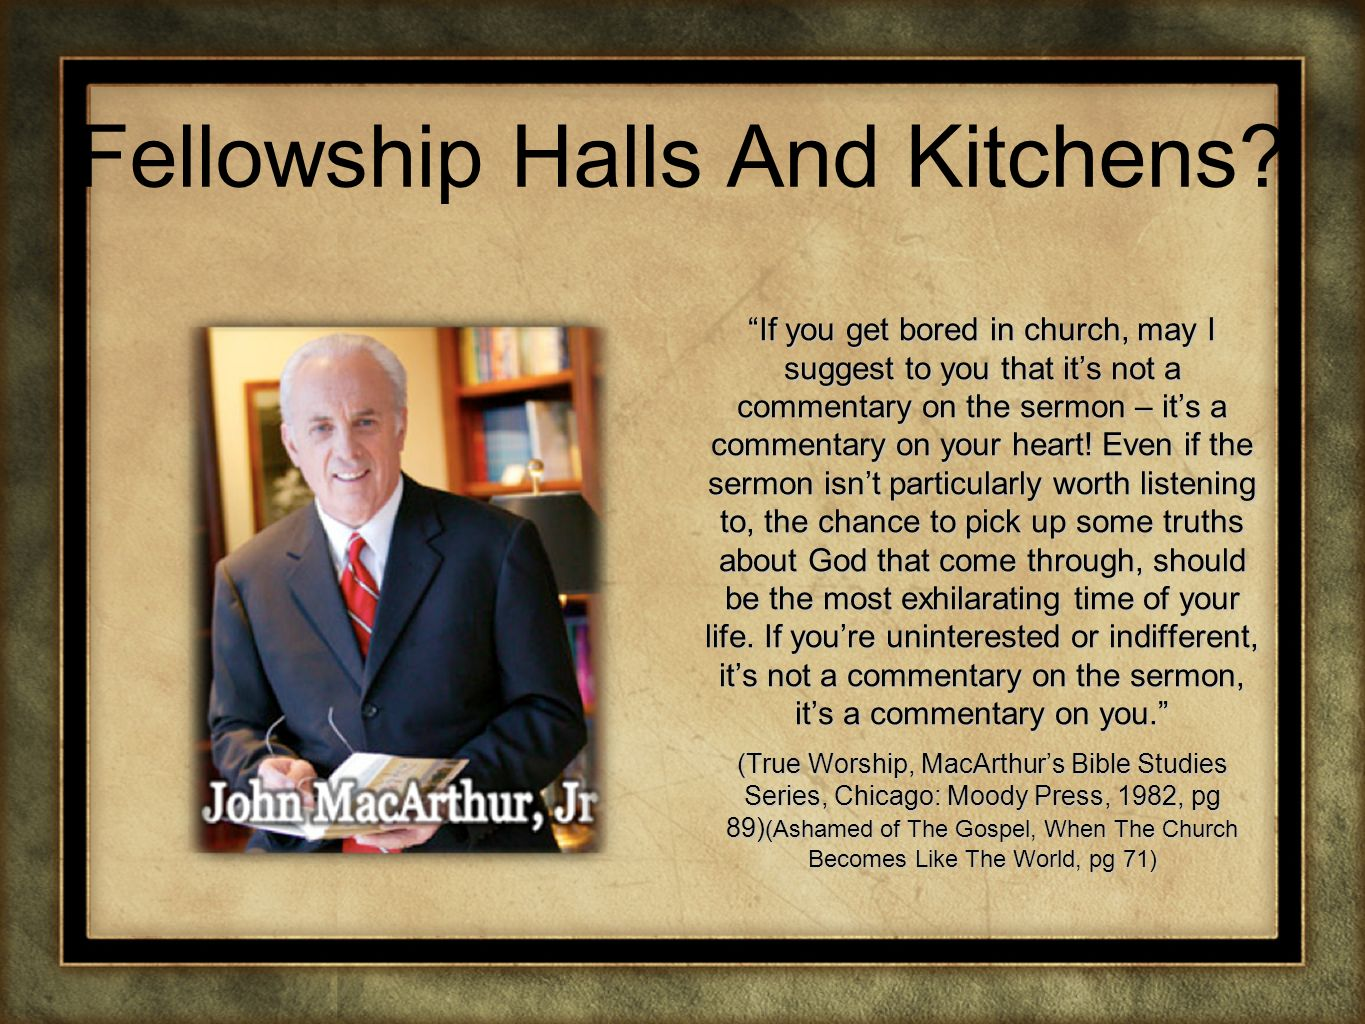 Fellowship Halls And Kitchens? If you get bored in church, may I suggest to you that its not a commentary on the sermon – its a commentary on your hea